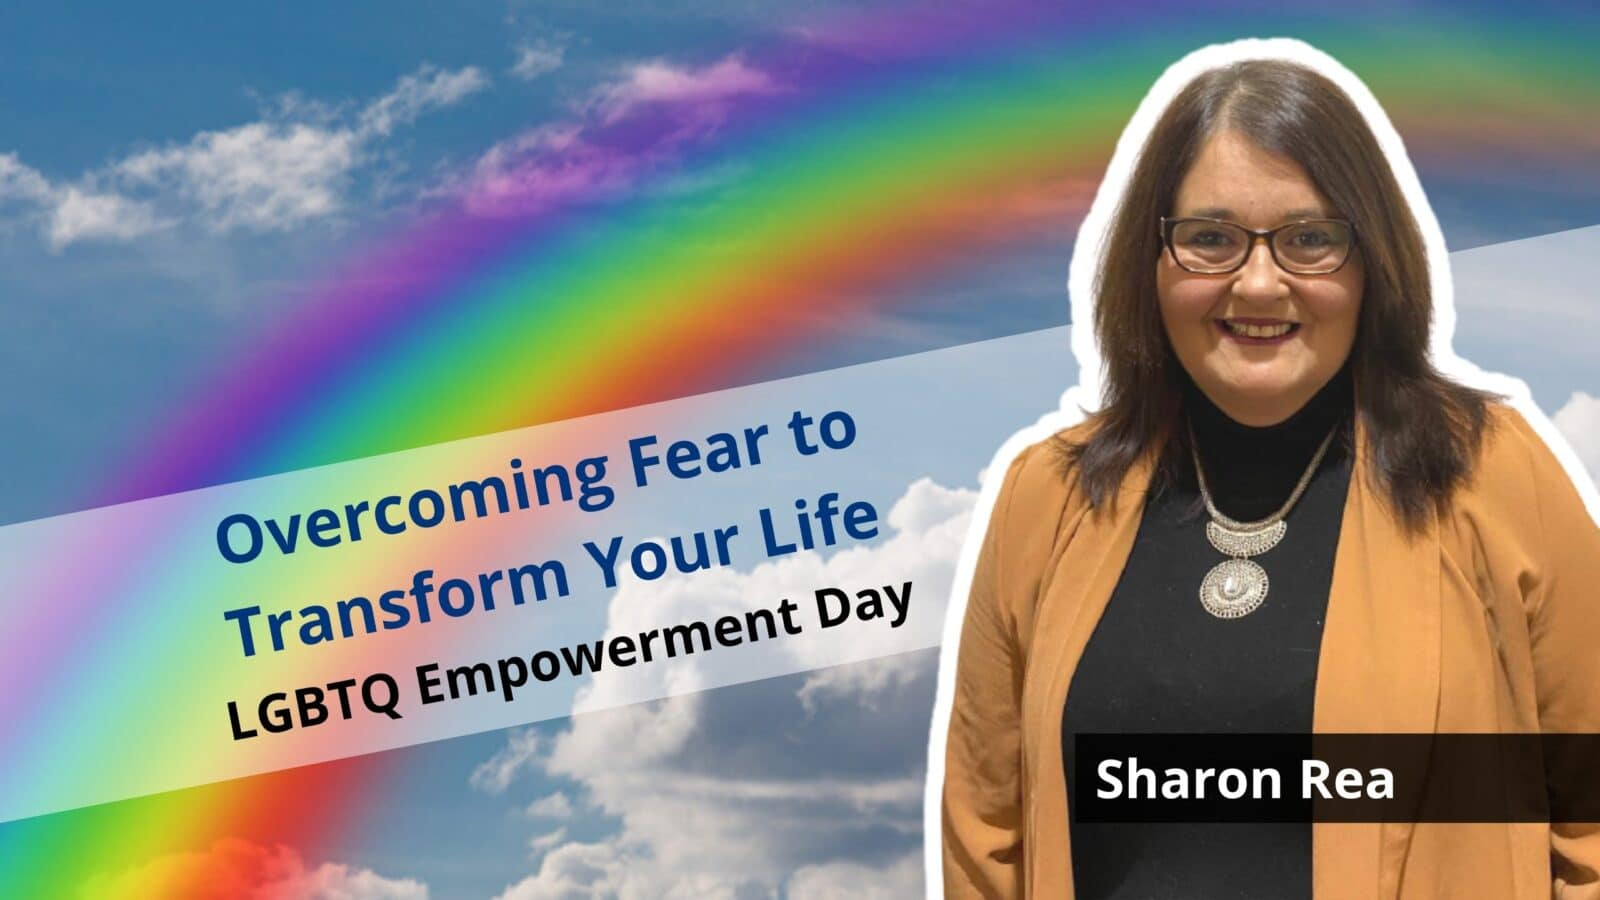 Overcoming fear to transform your life empowerment day Sharon Rea lgbt out gay entrepreneur lgbtq business owners lesbian queer community OutBuro